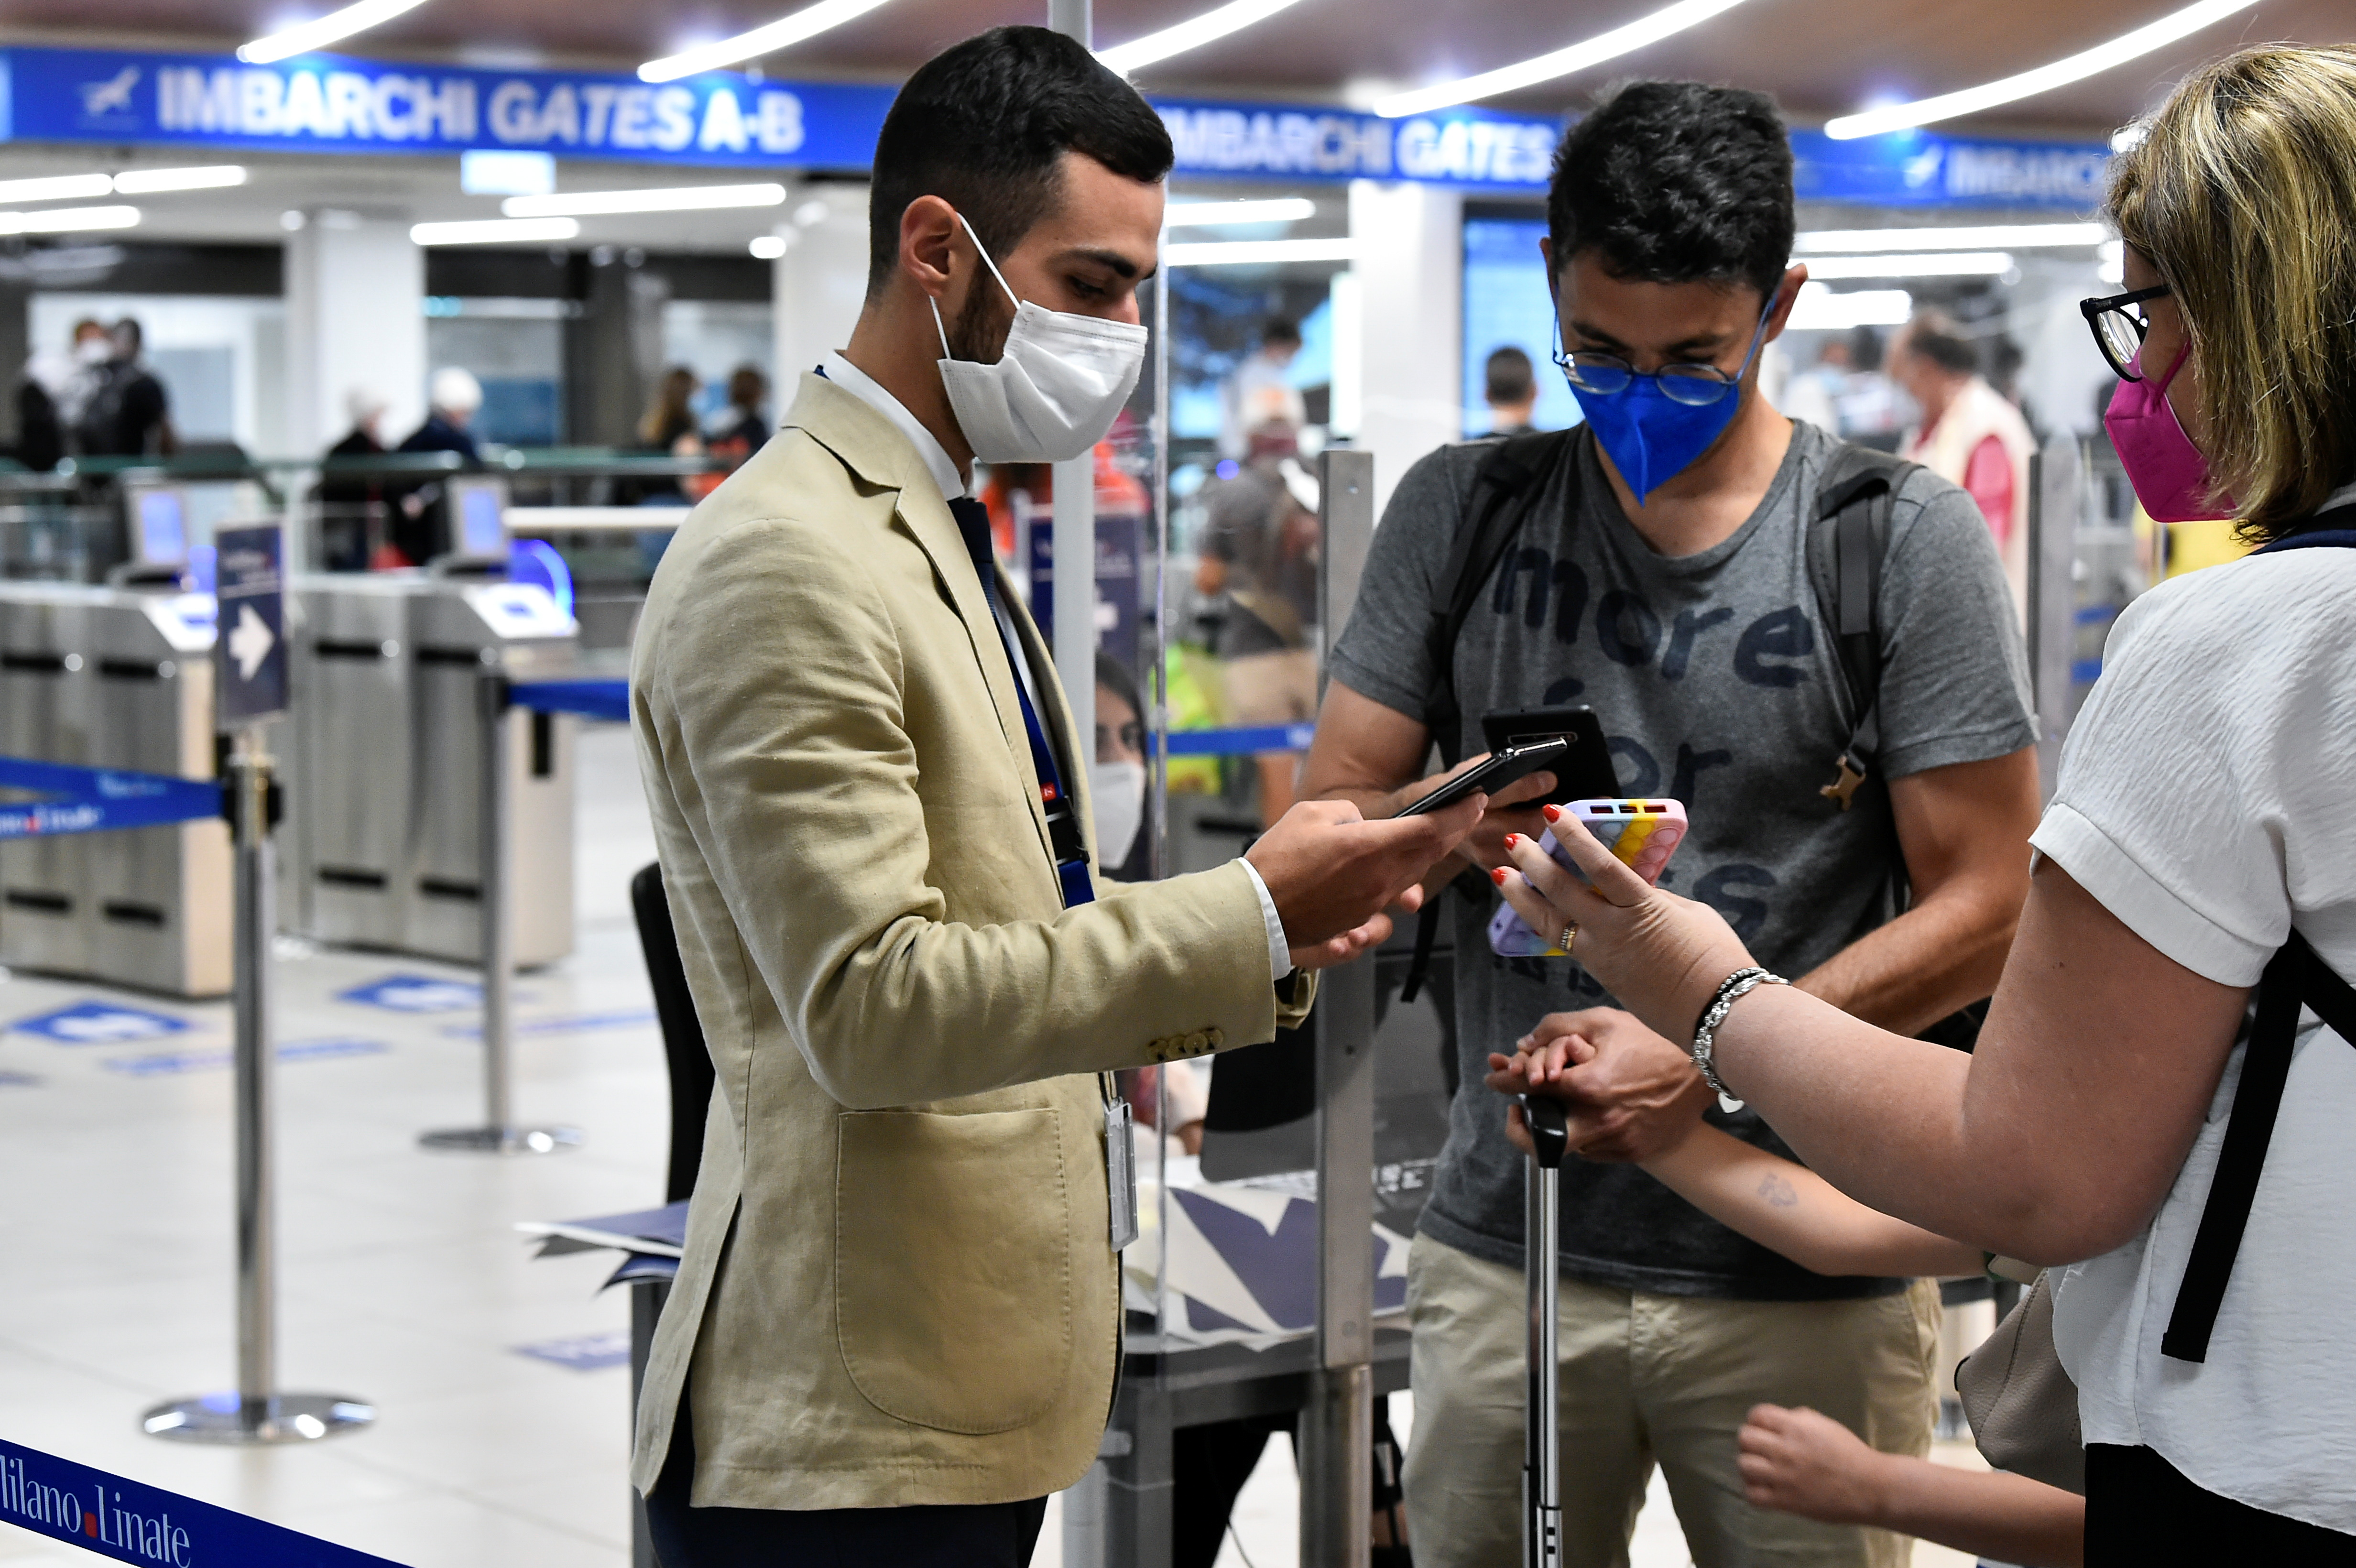 People show their digital COVID-19 certificates at Linate Airport in Milan, Italy, September 1, 2021. REUTERS/Flavio Lo Scalzo